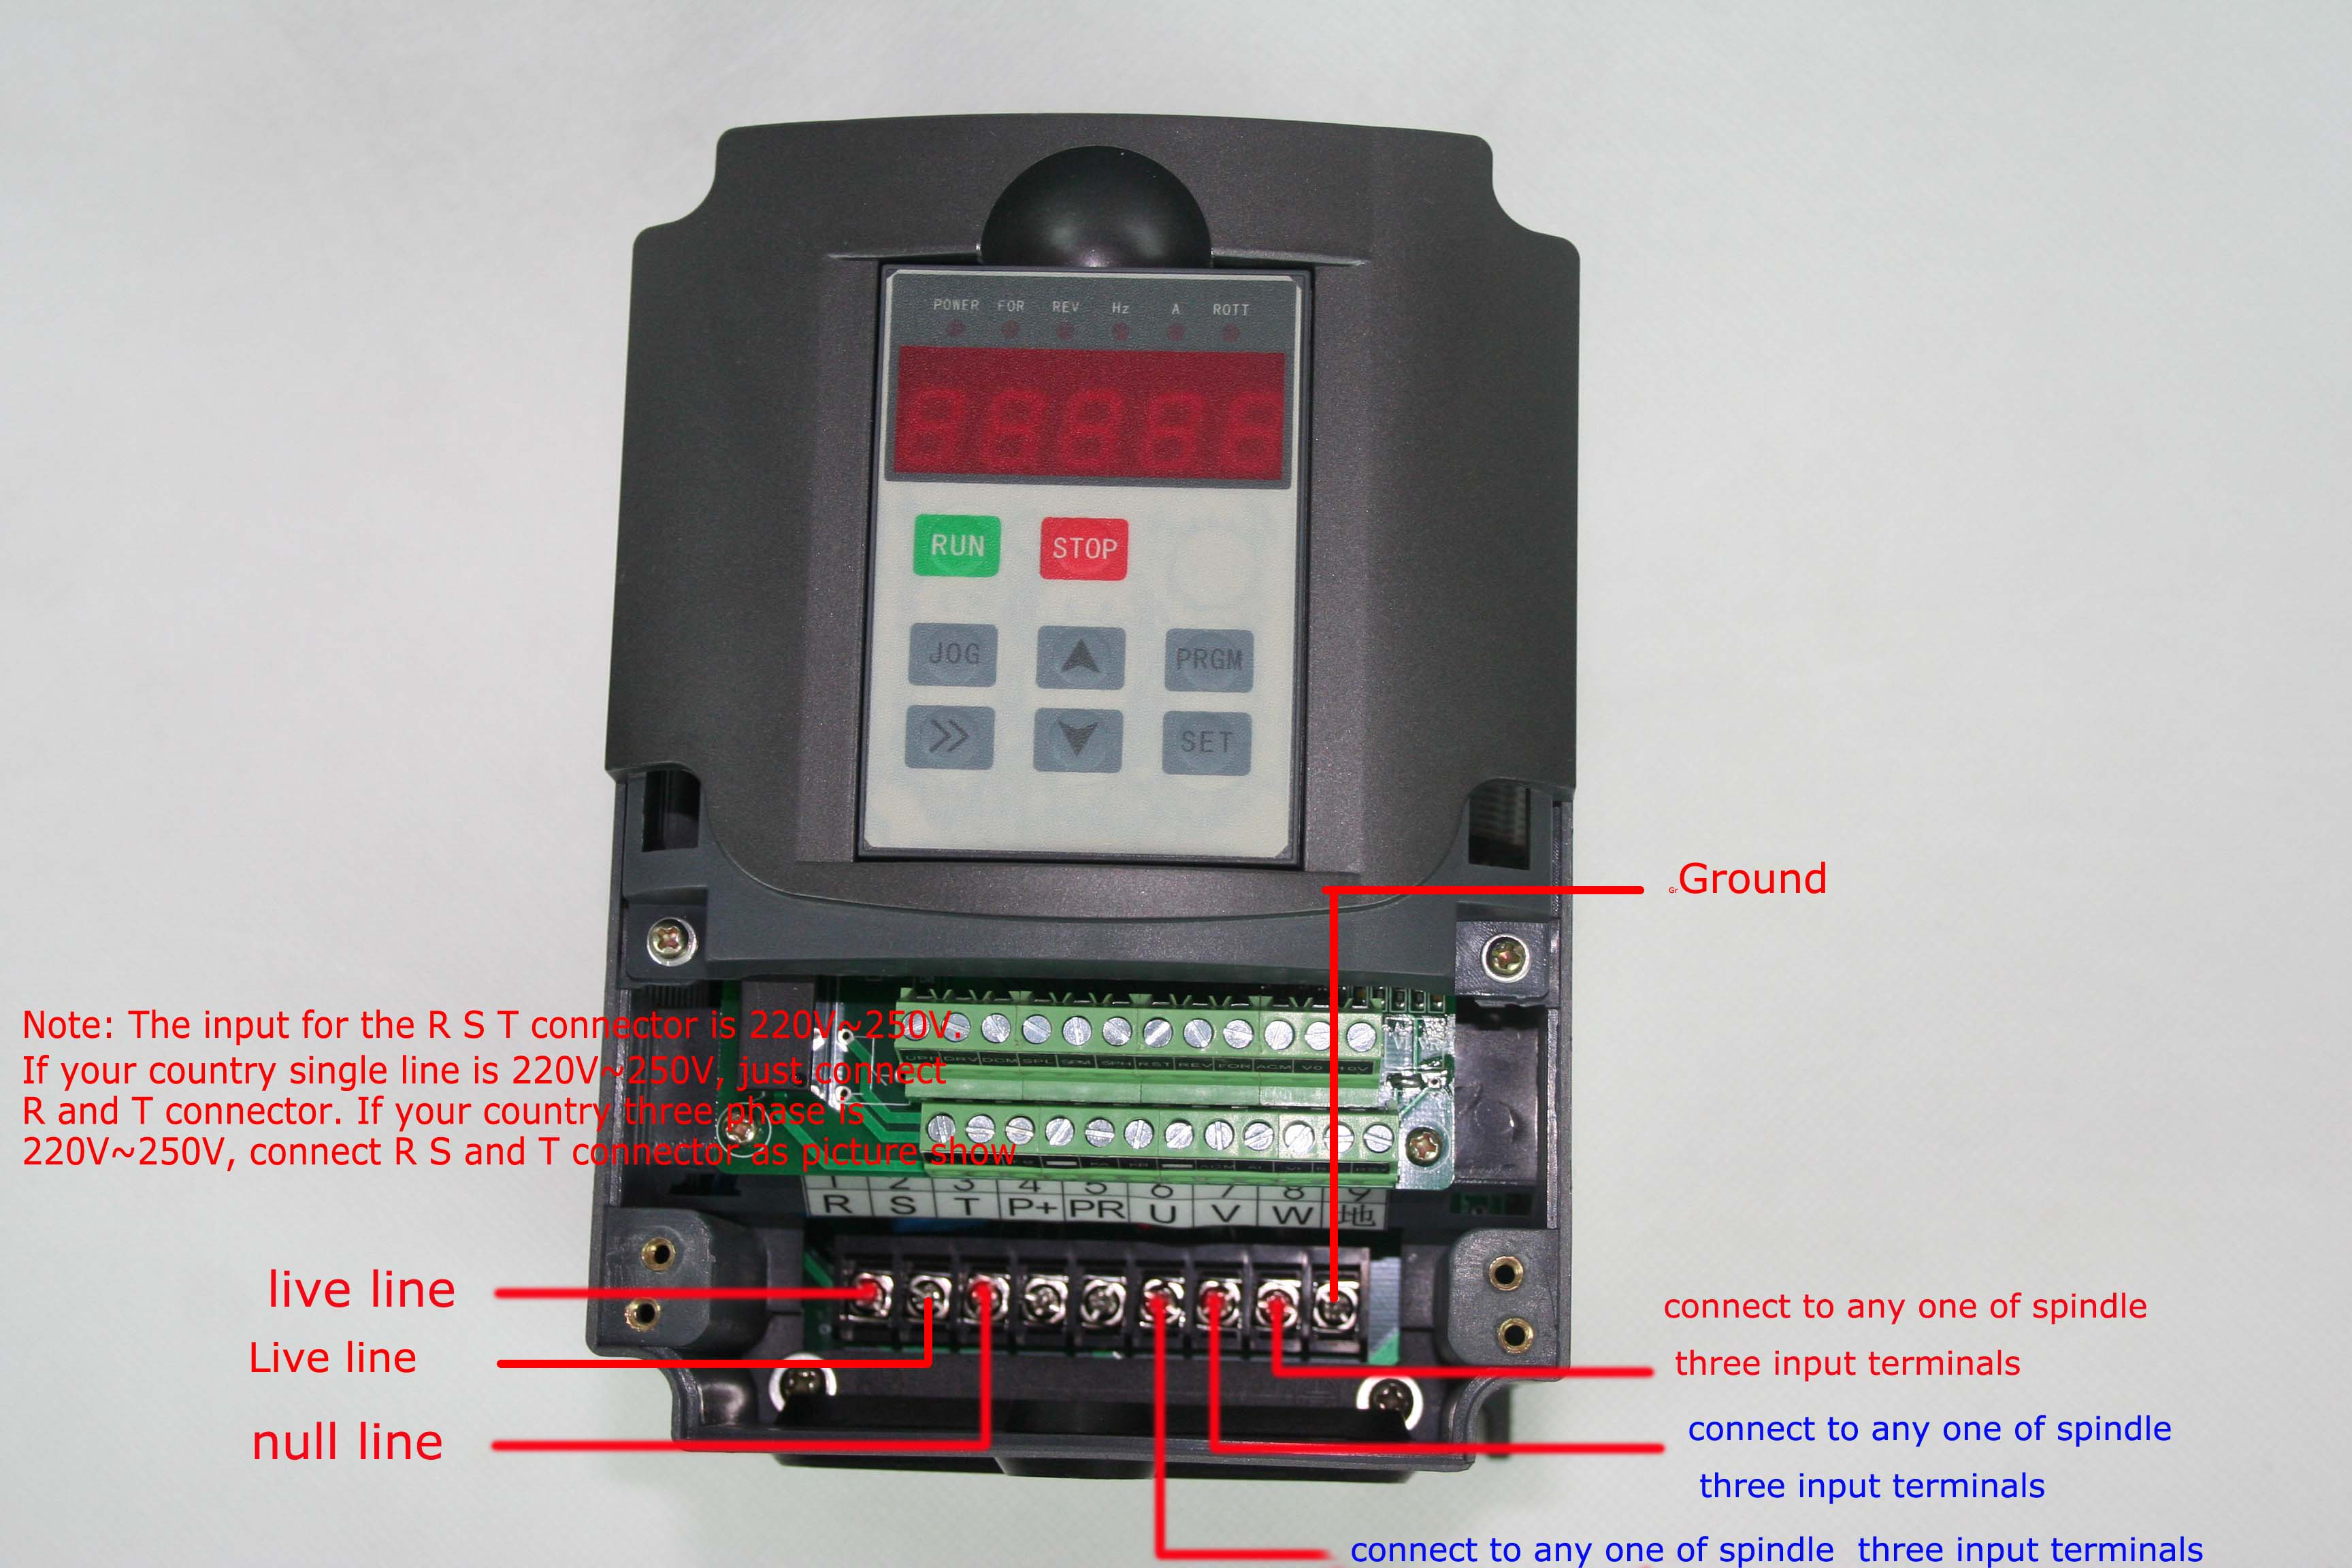 Huanyang Chinese Vfd Settings And Manual Here Archive Page 2 Cnc Electronics Wiring Diagram Largest Forums For Professional Hobbyist Alike